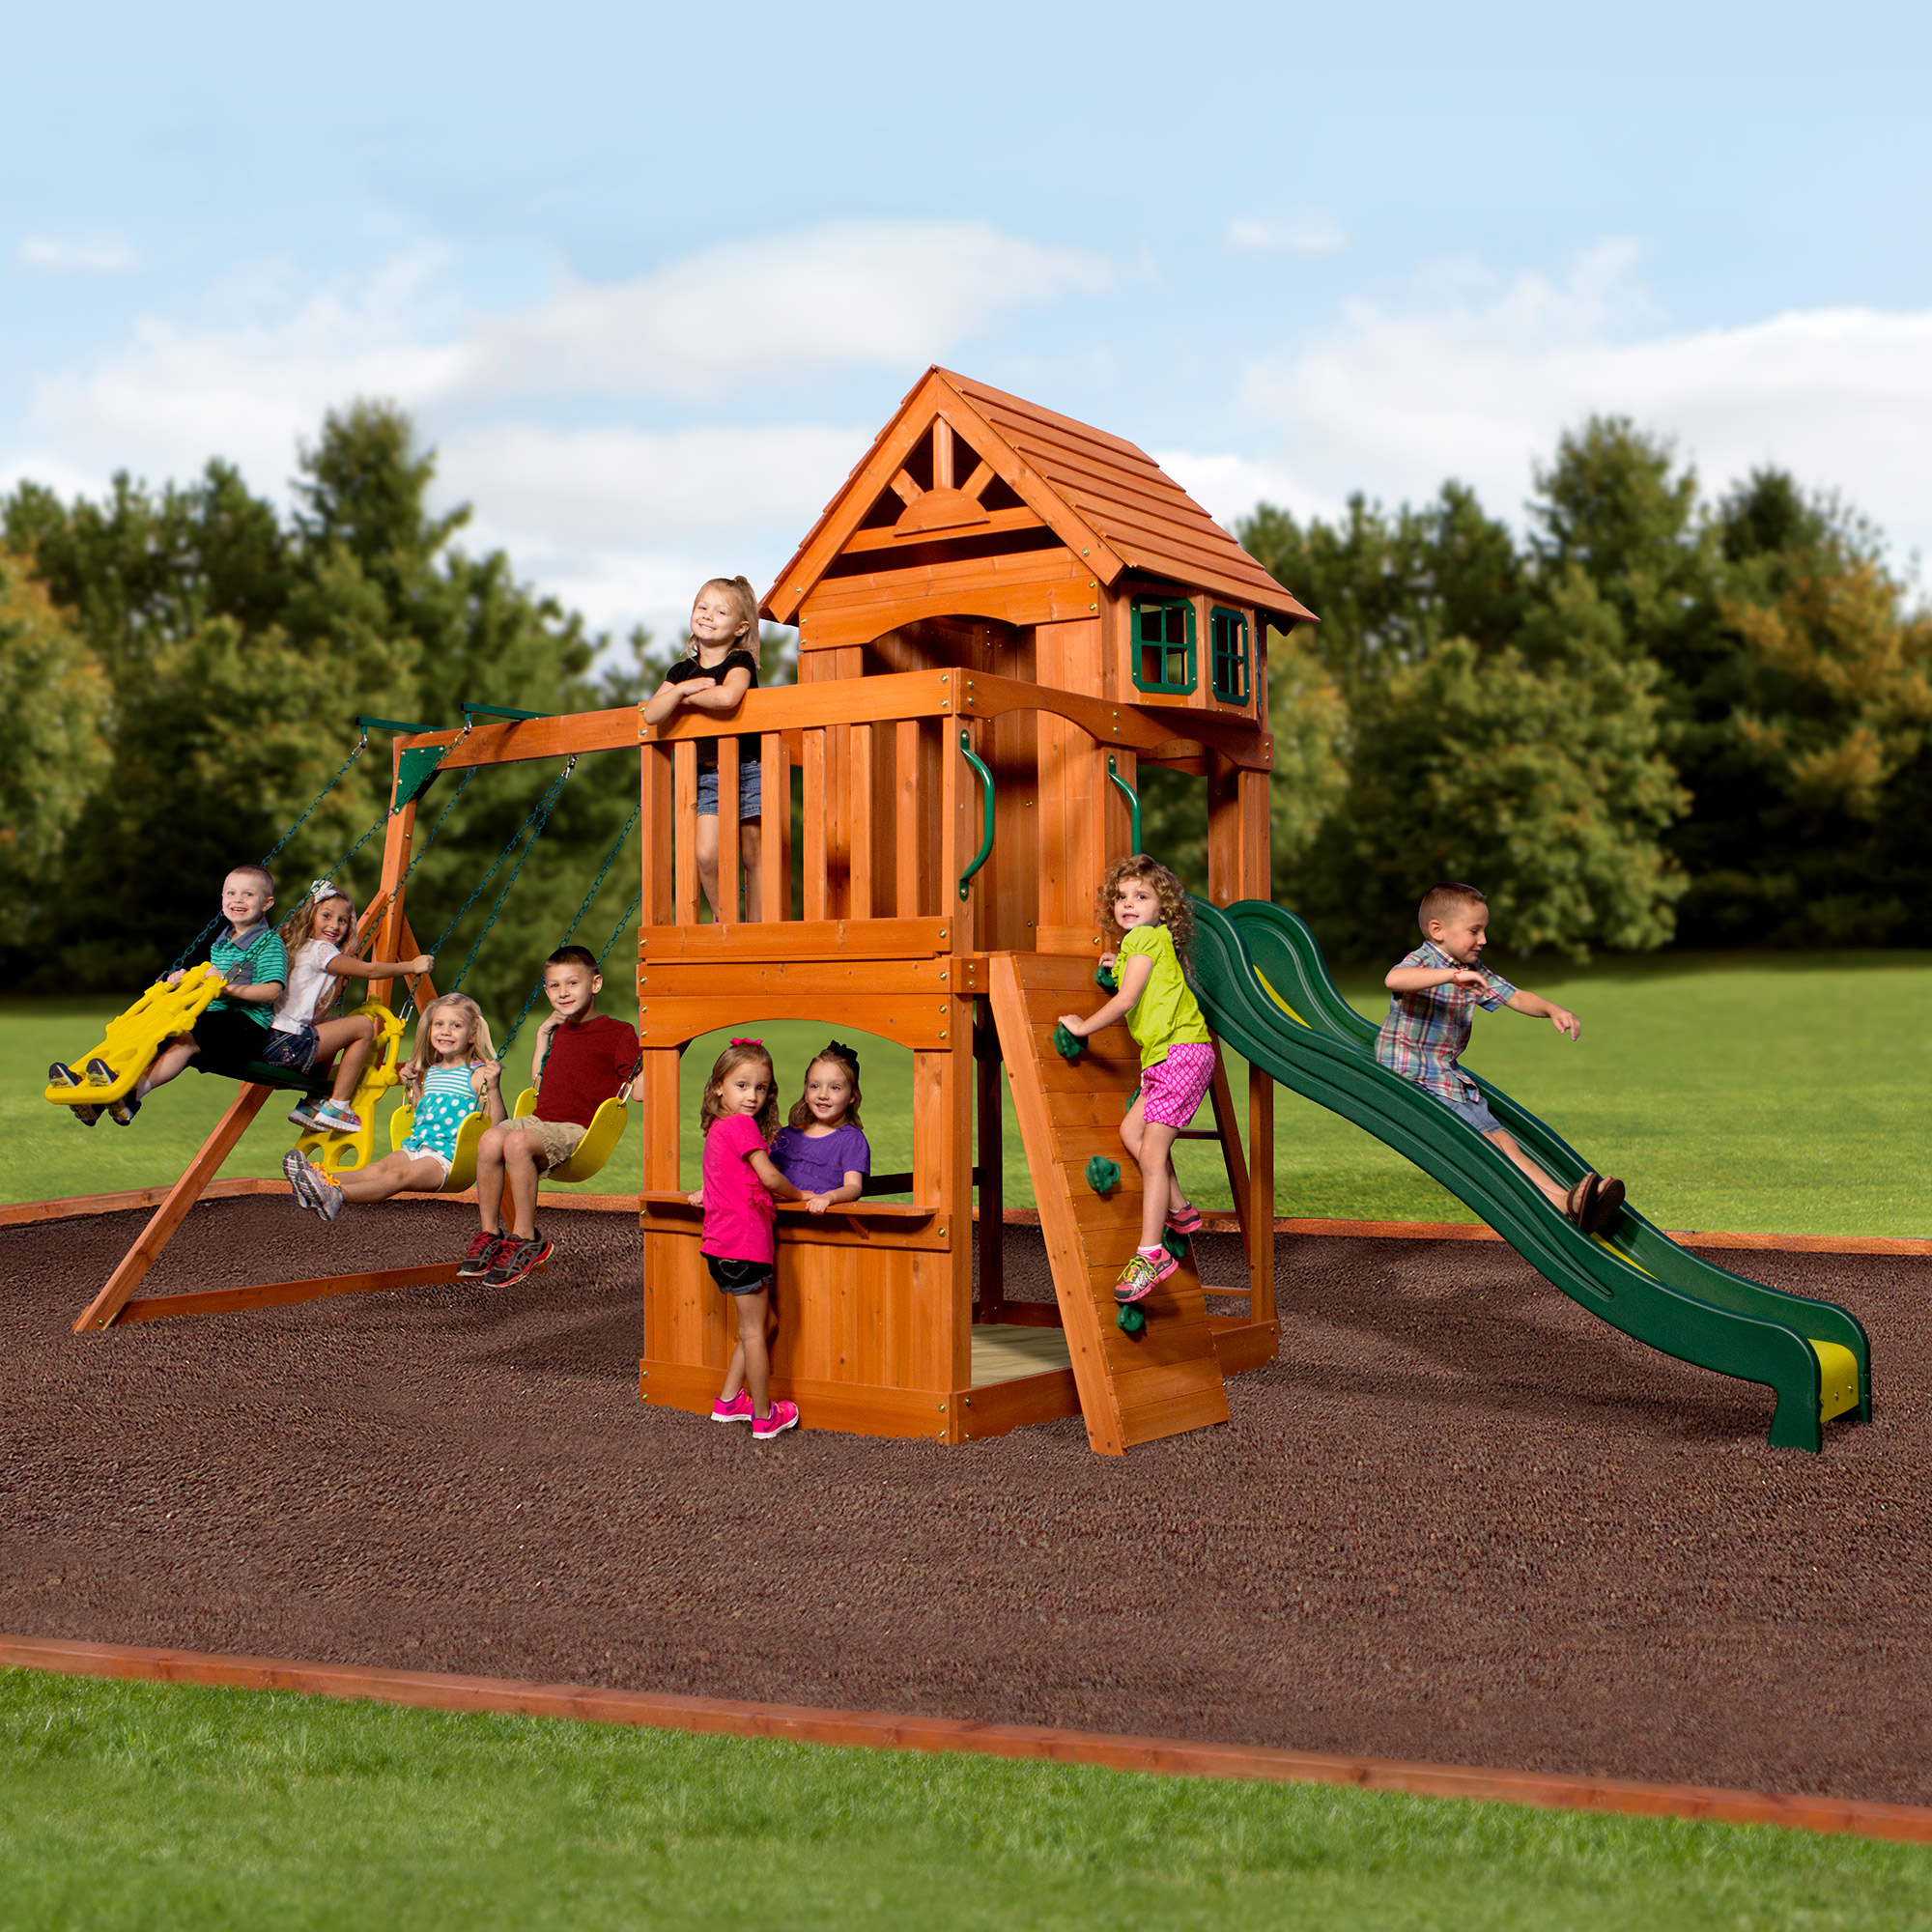 Backyard Discovery Cedar View Swing Set backyard discovery atlantis cedar wooden swing set - walmart